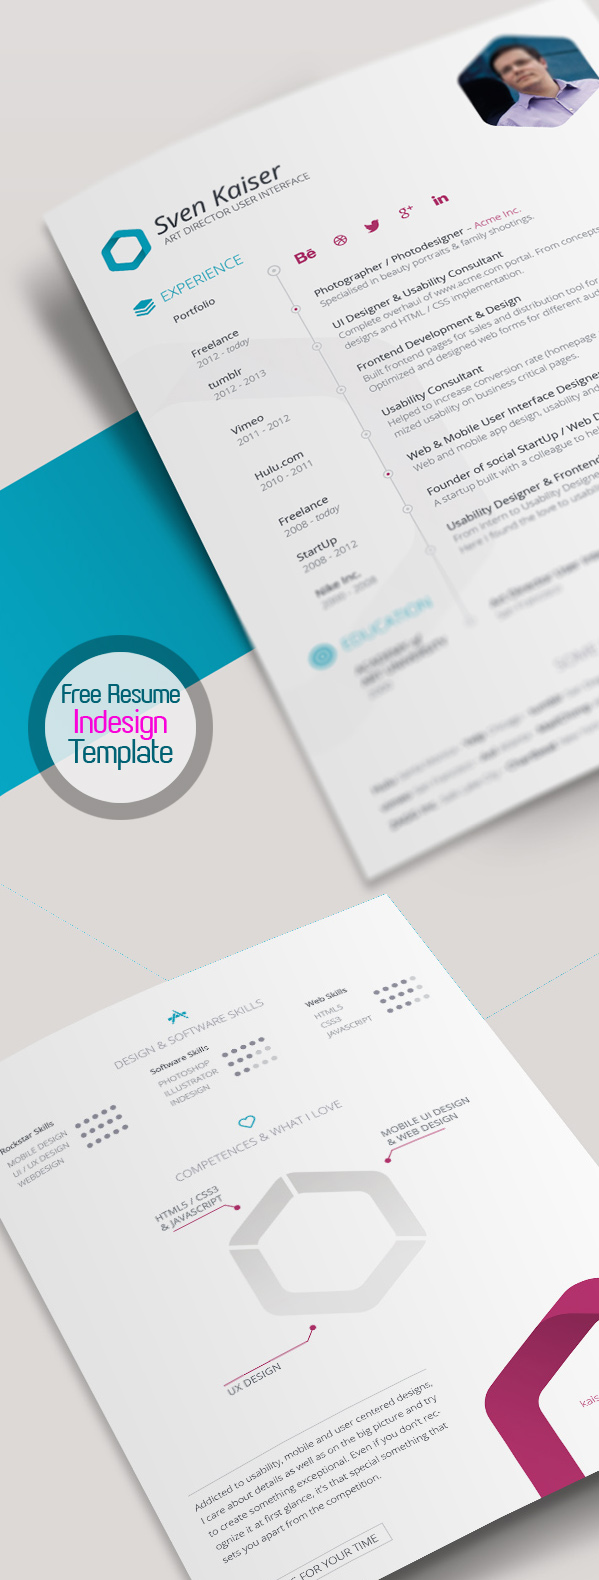 Free Resume Template For InDesign (Vita / CV)  Resume Template Free